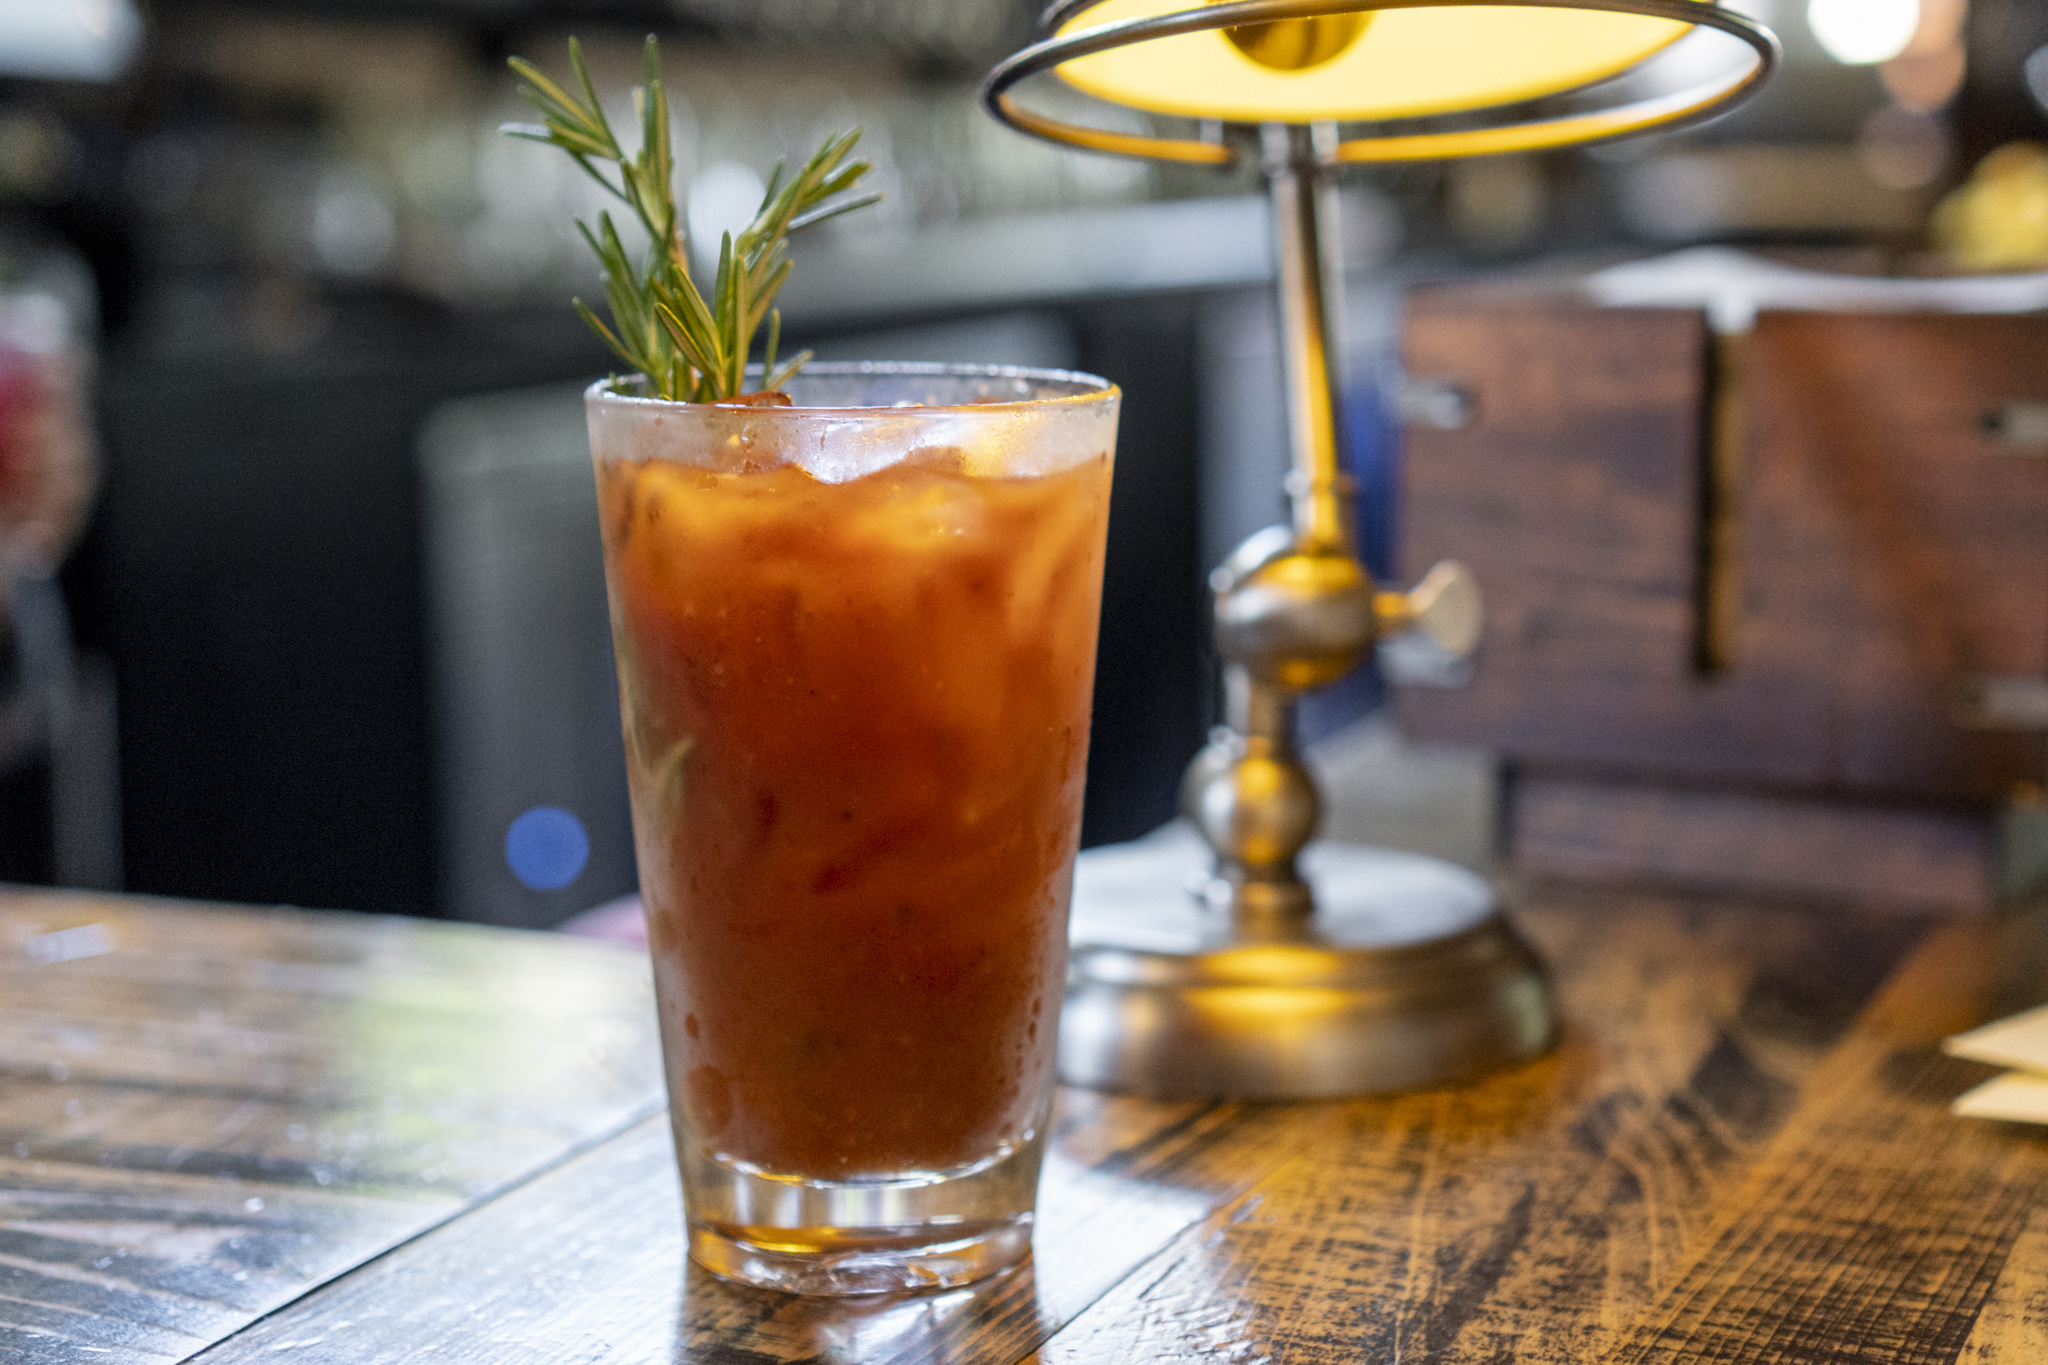 The Rosemary Bloody Mary from Stillwaters Tavern